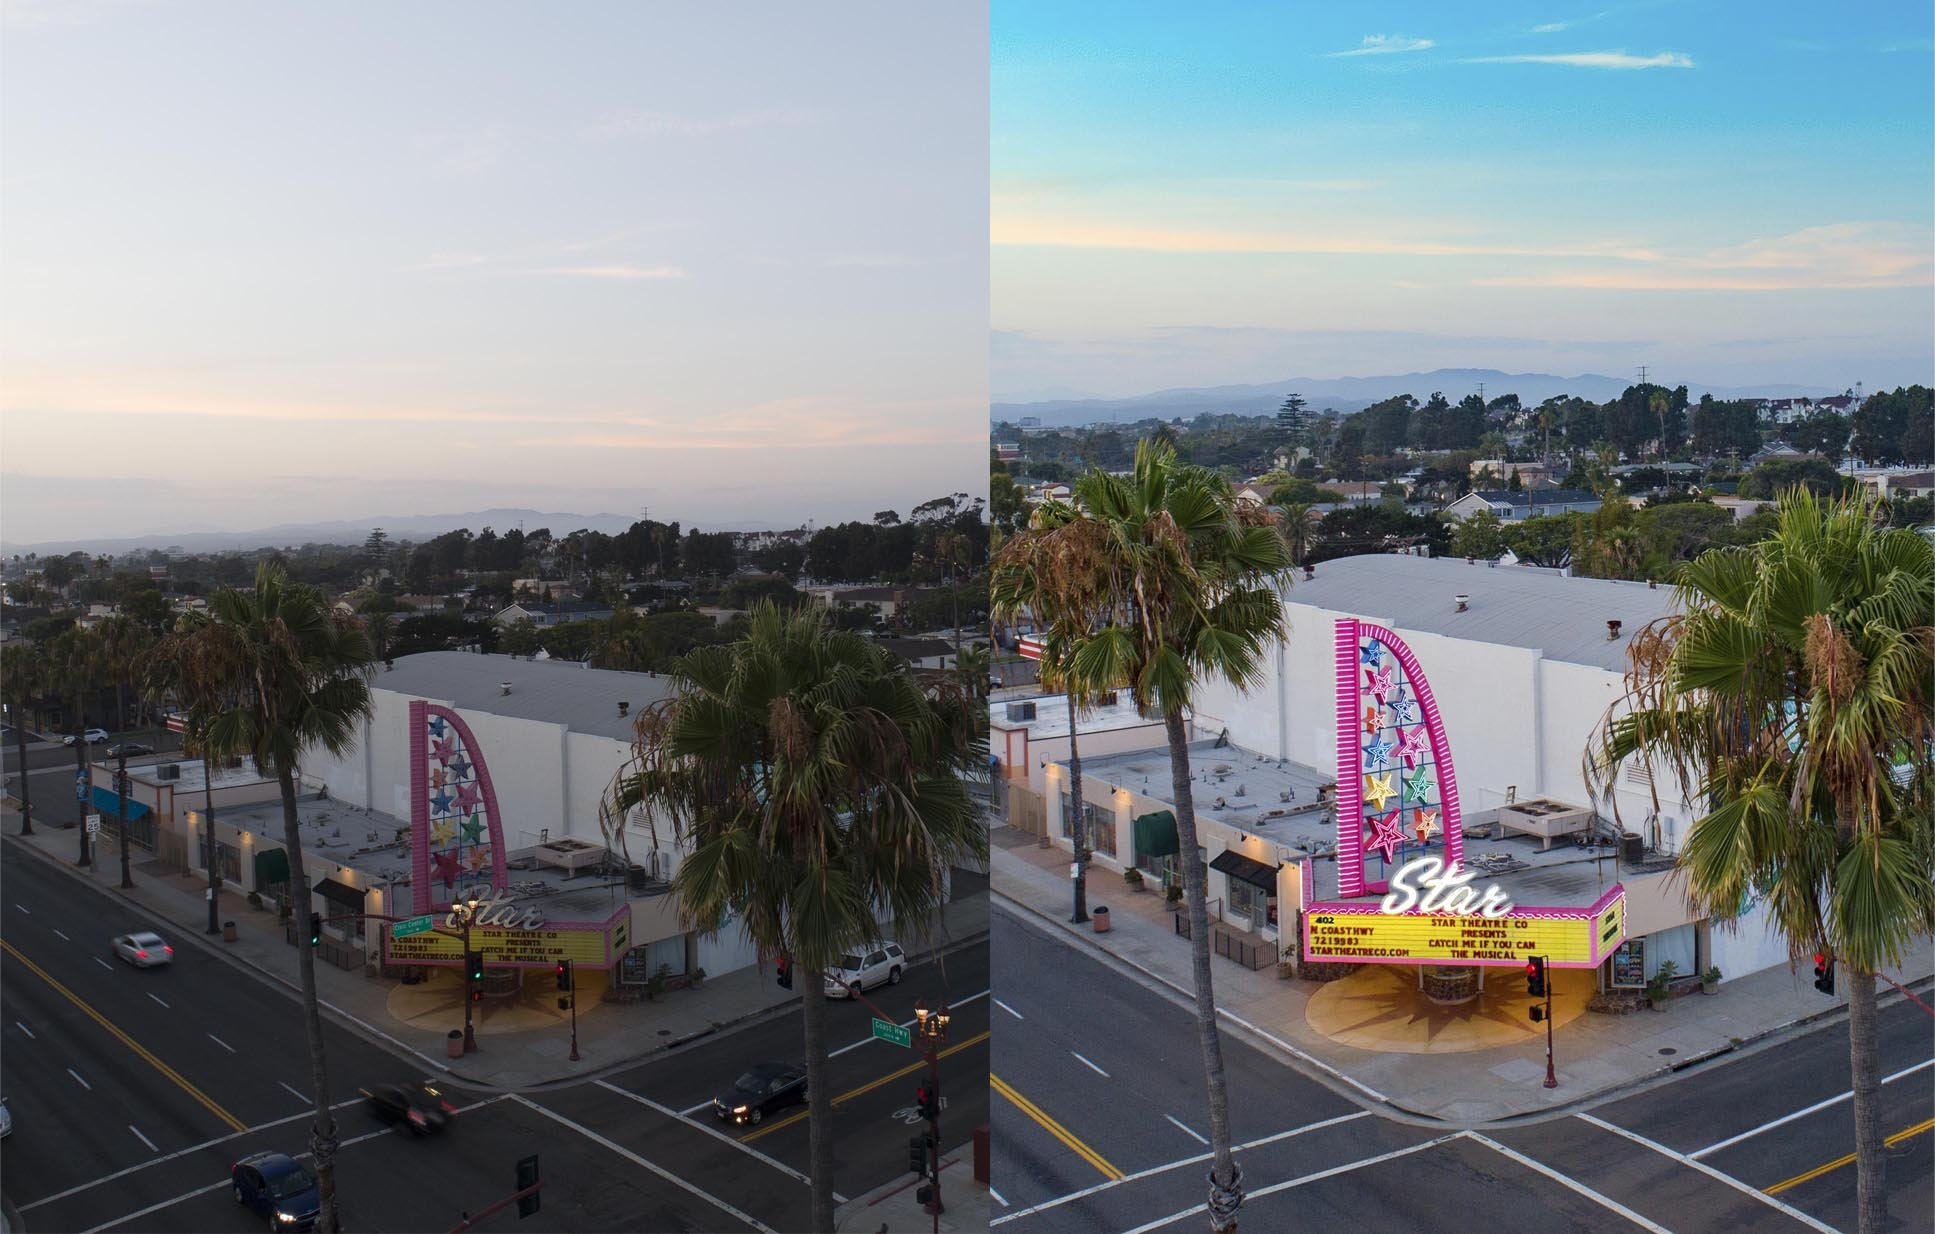 Split Screen photo of before and after retouching of a drone photograph of Star Theatre Oceanside, CA